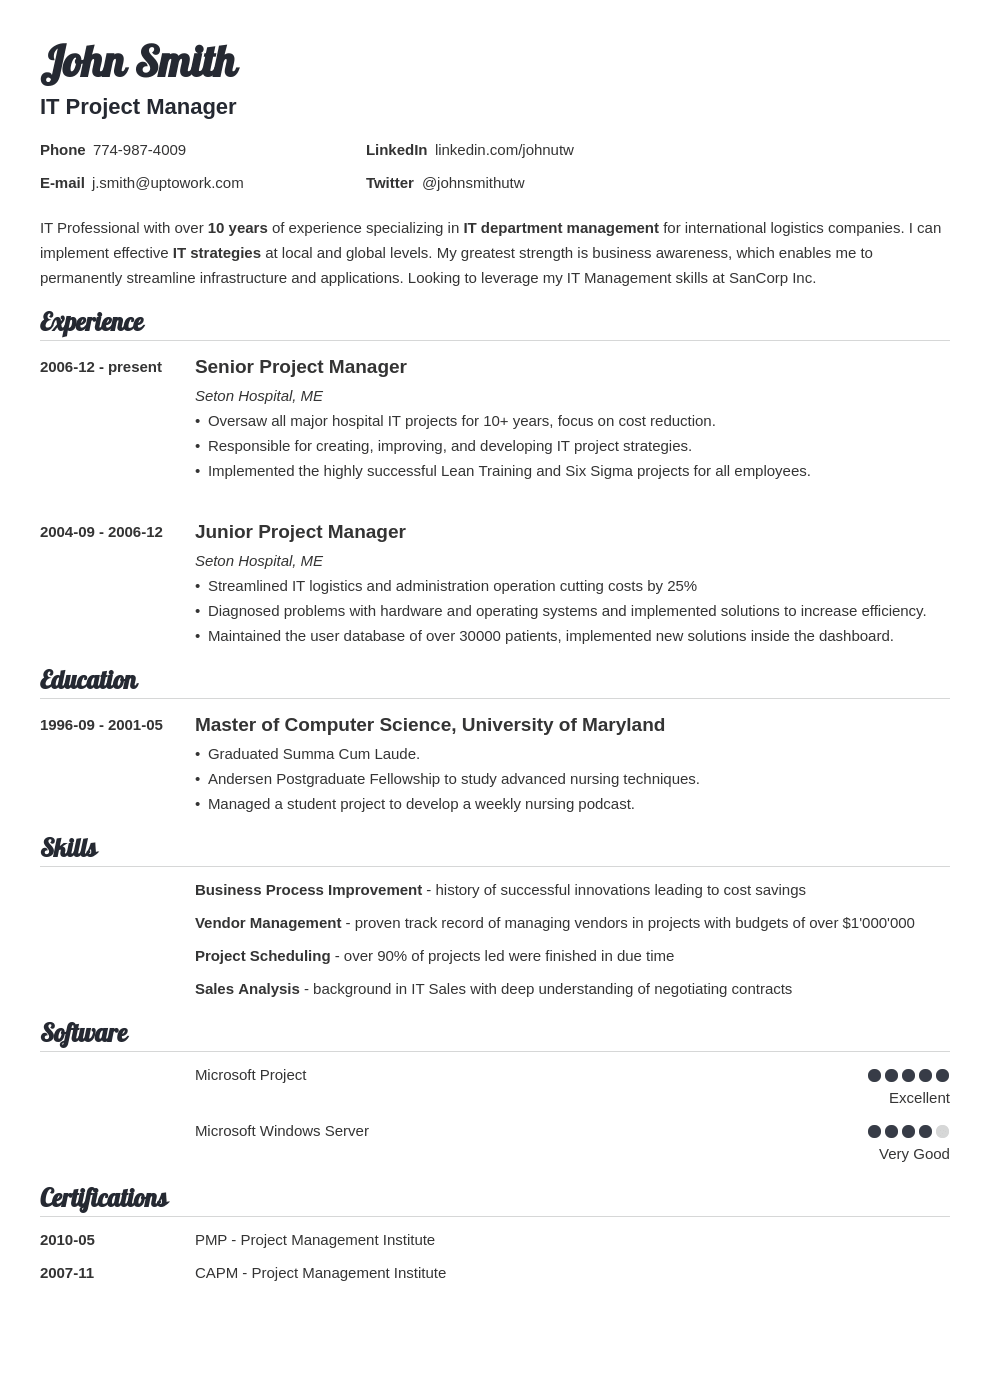 15 Blank Resume Templates Forms To Fill In And Download